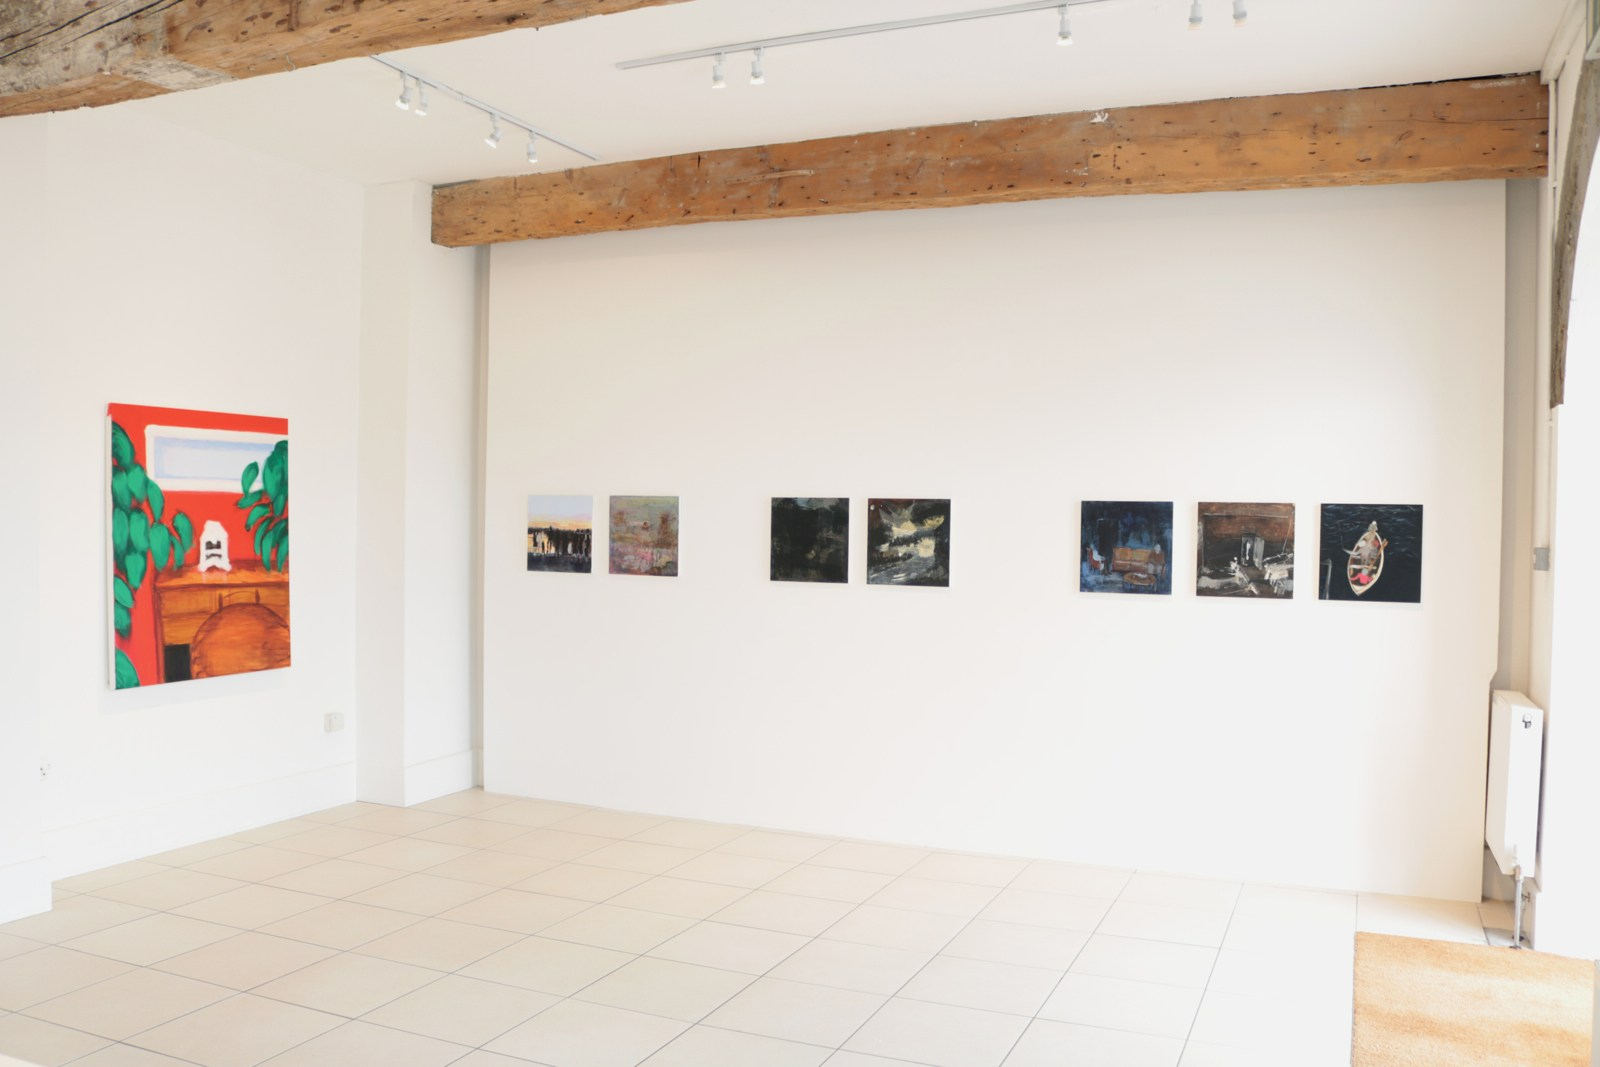 Installation view, Custom House Studios & Gallery, Westport, Ireland, 2018